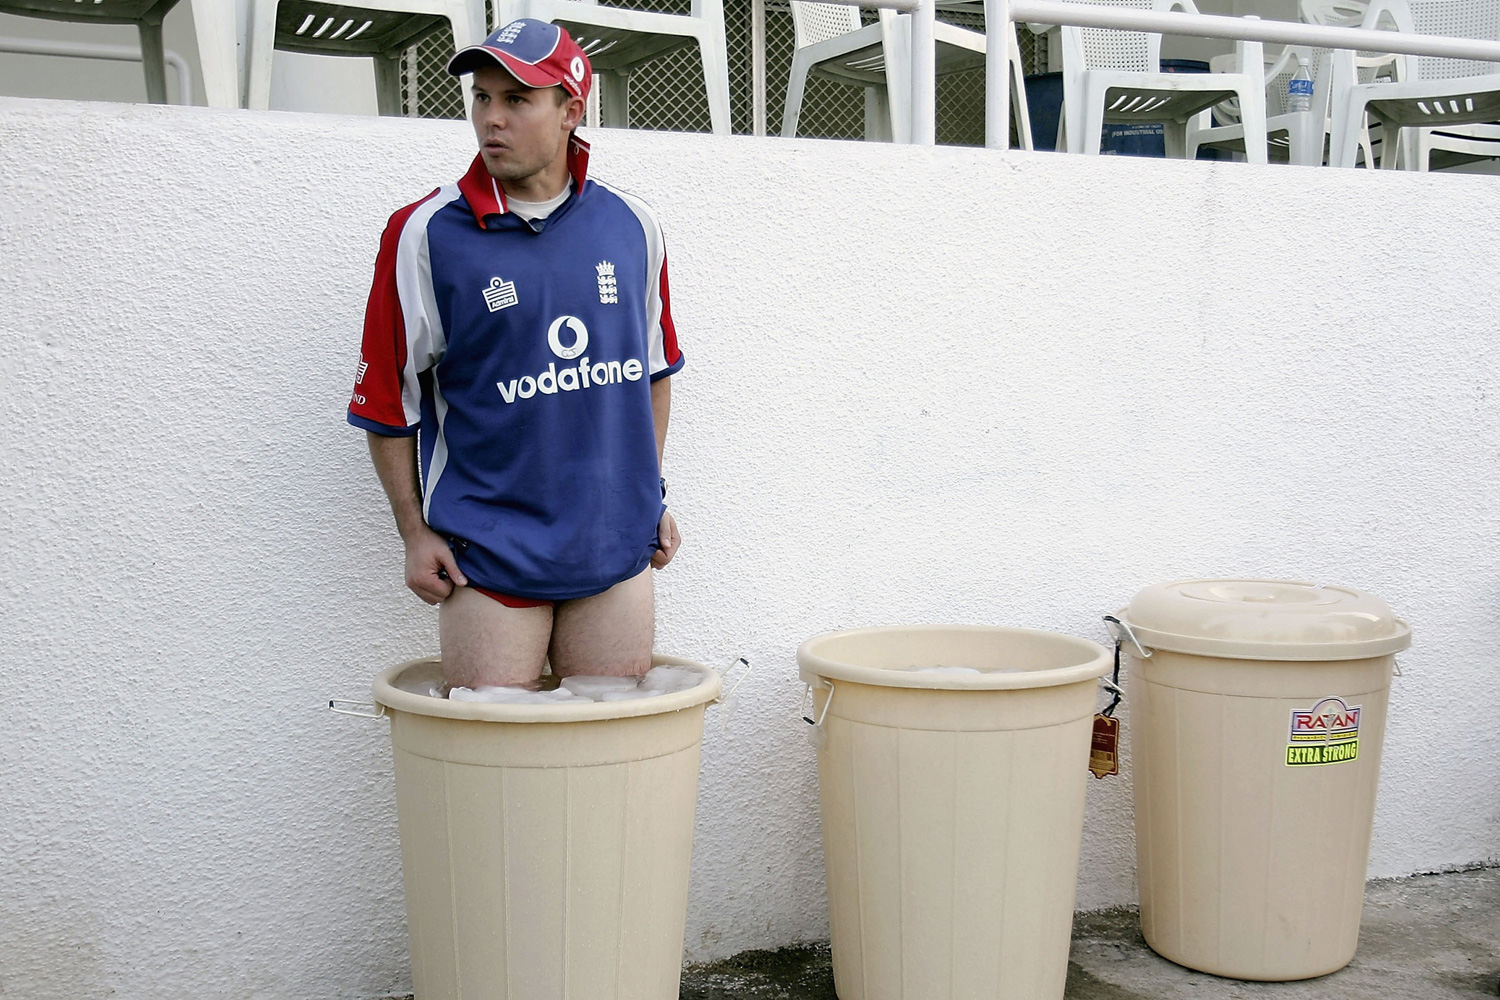 English cricketer Geraint Jones stands in an ice bath after training during a practice session at the IPCL ground on in Baroda, India.